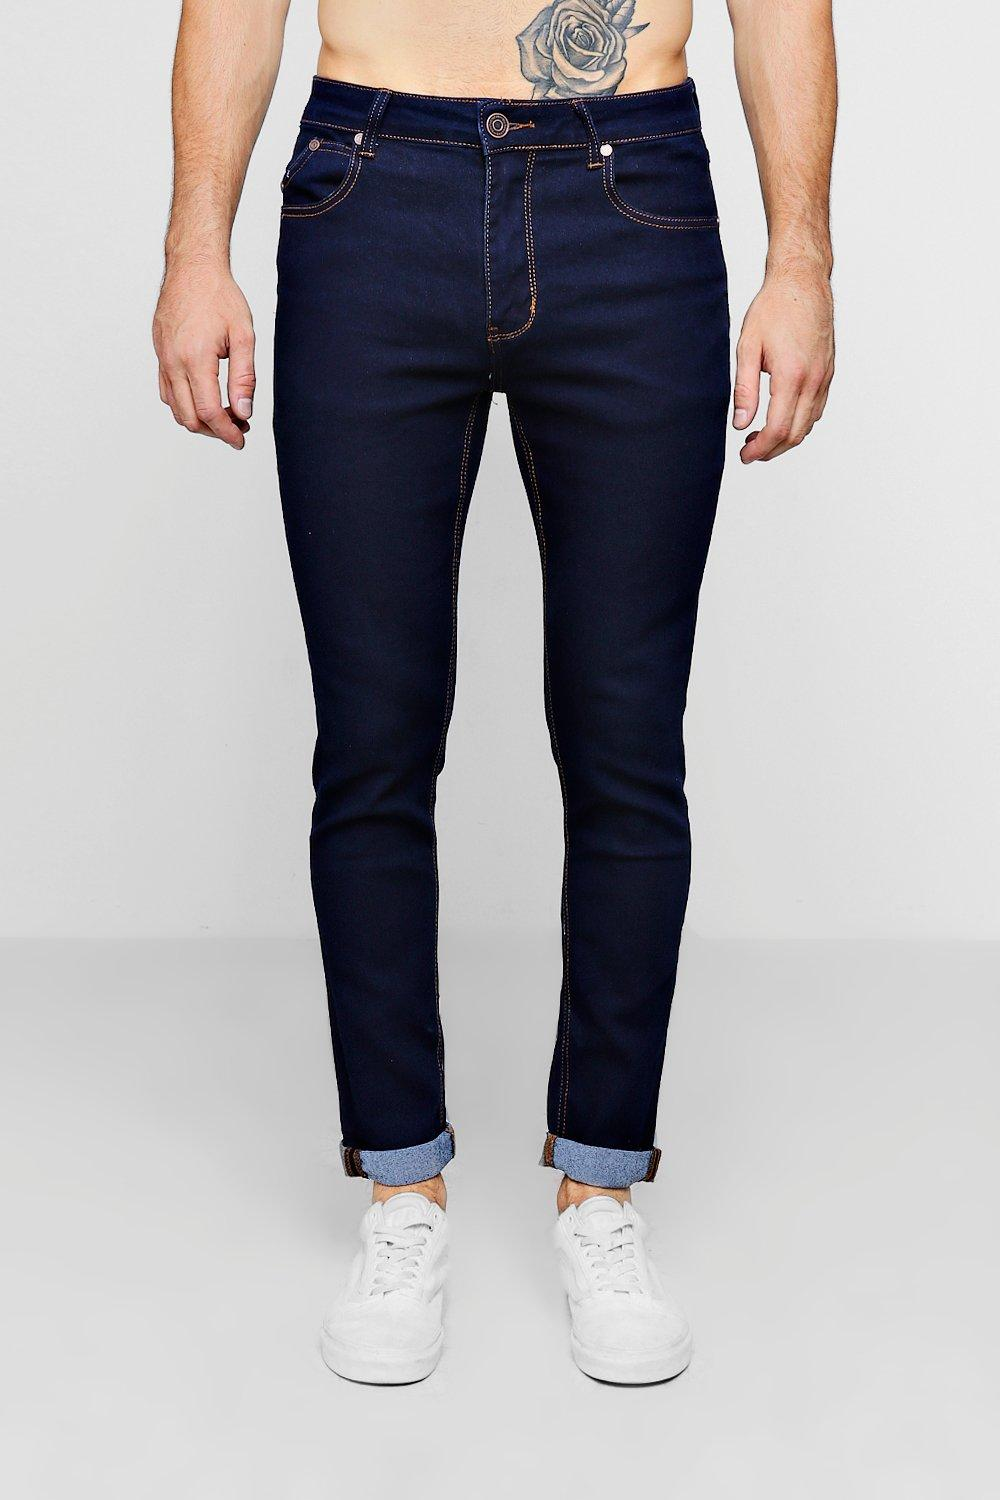 Skinny Fit indigo Jeans Turn Up xnZ1Owqzng